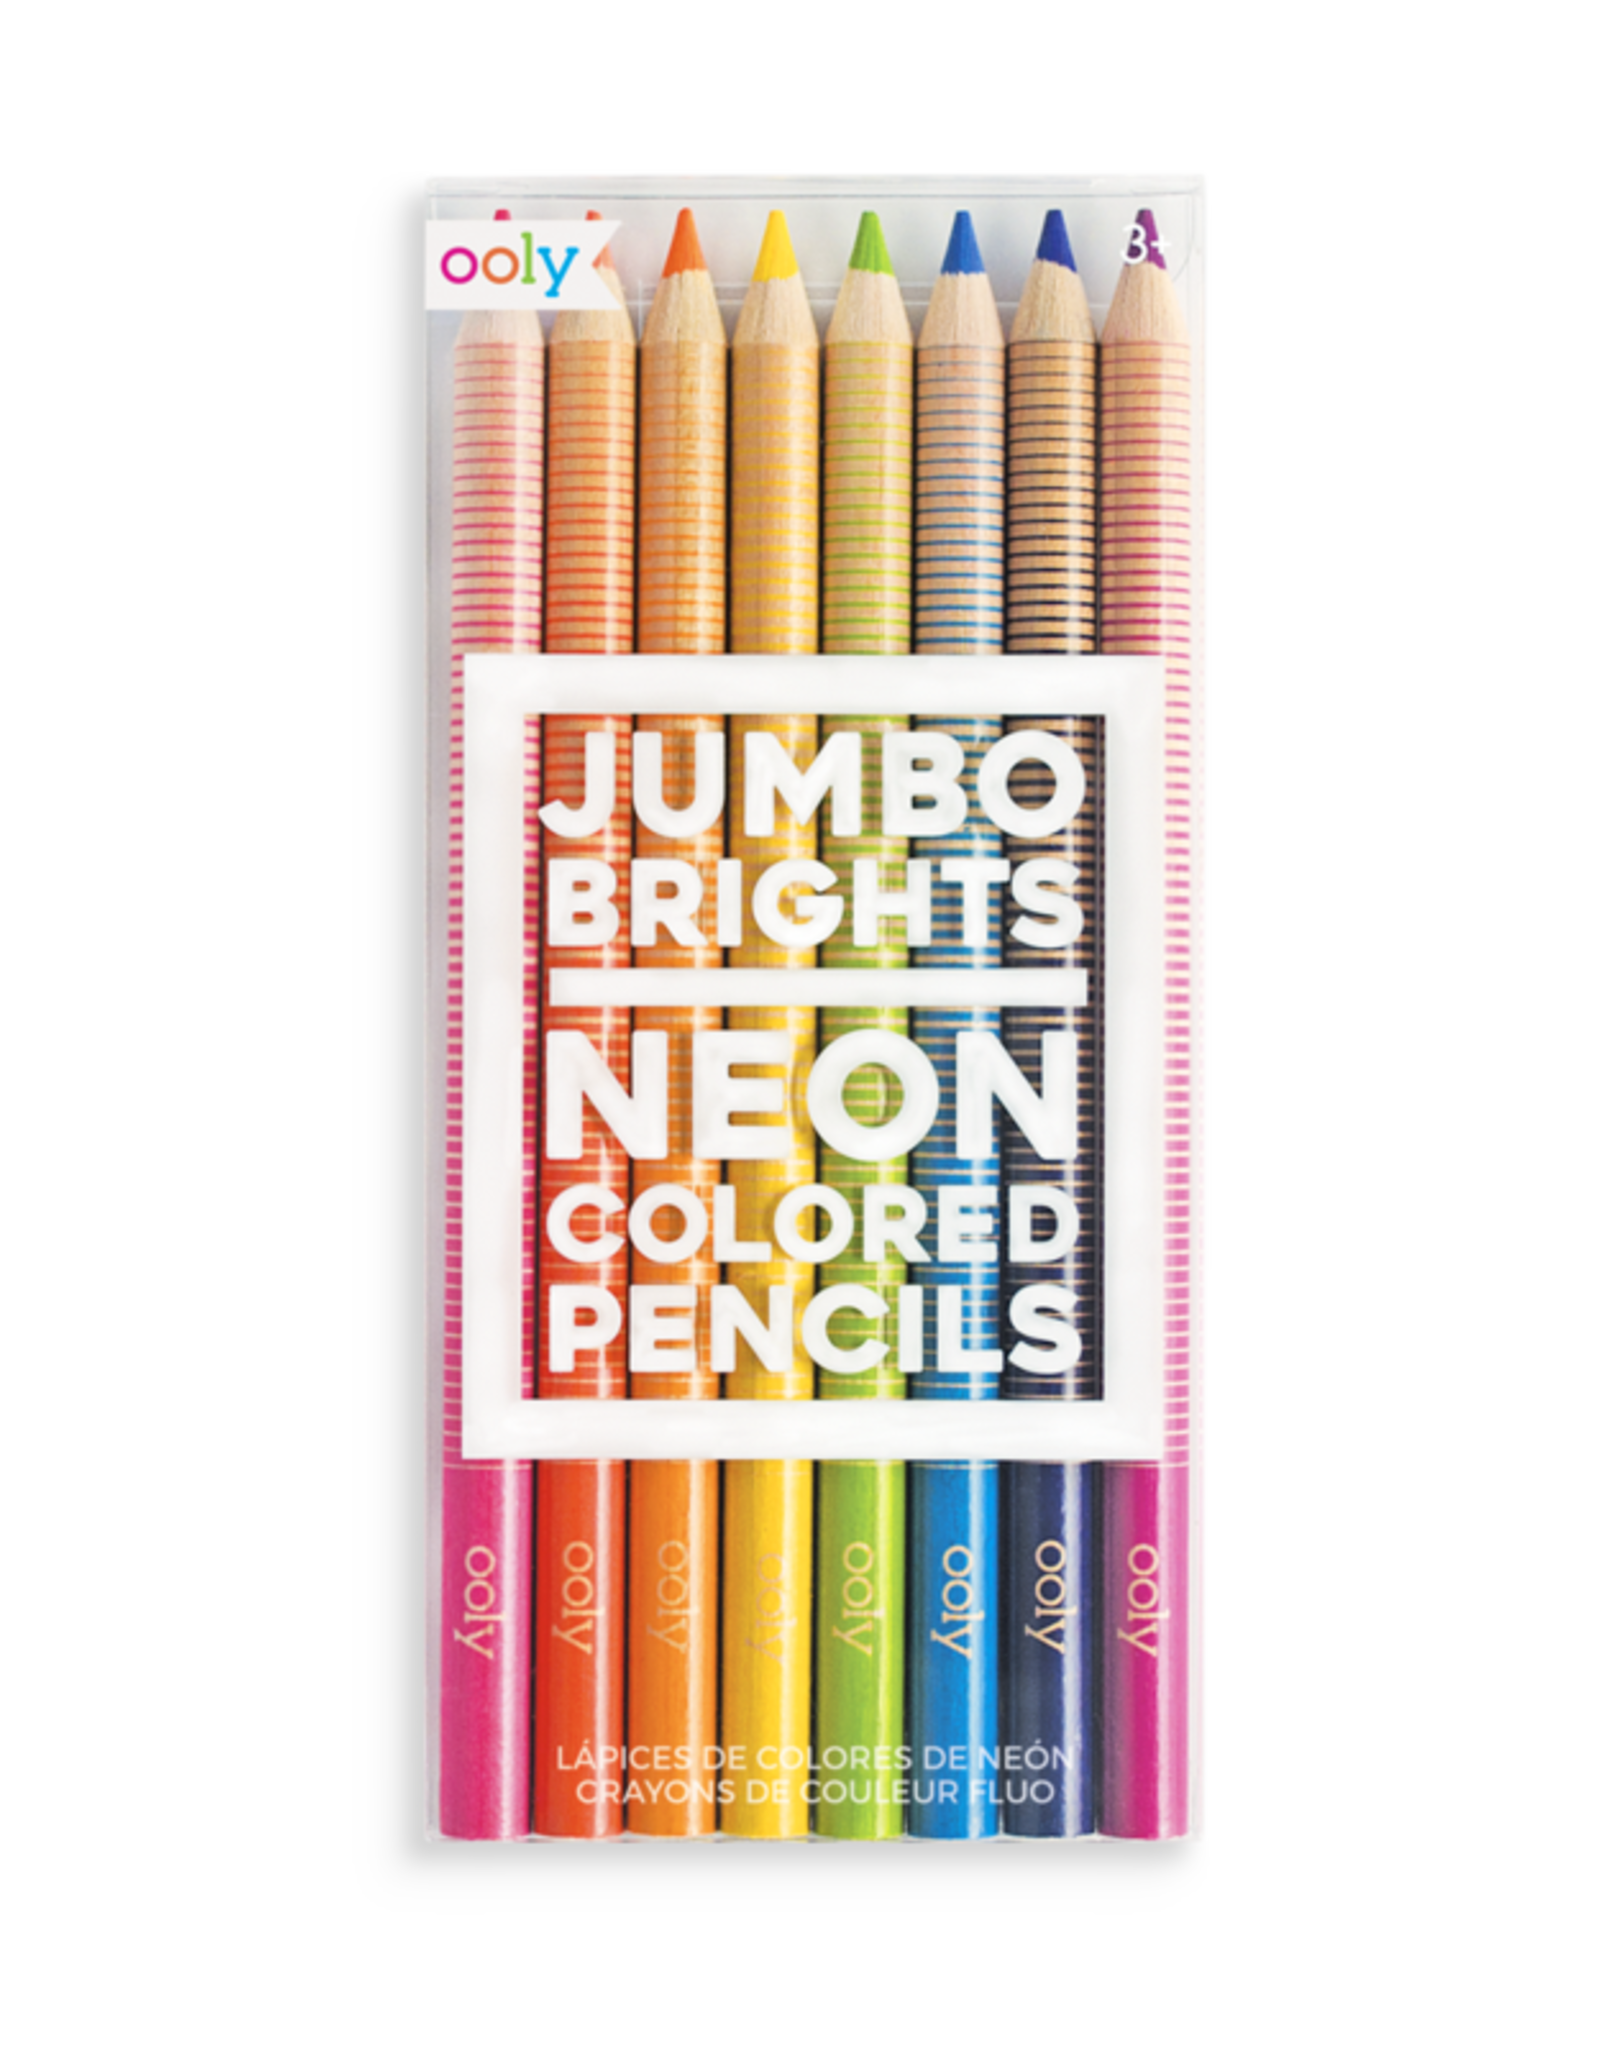 OOLY JUMBO BRIGHTS NEON COLORED PENCILS - SET OF 8